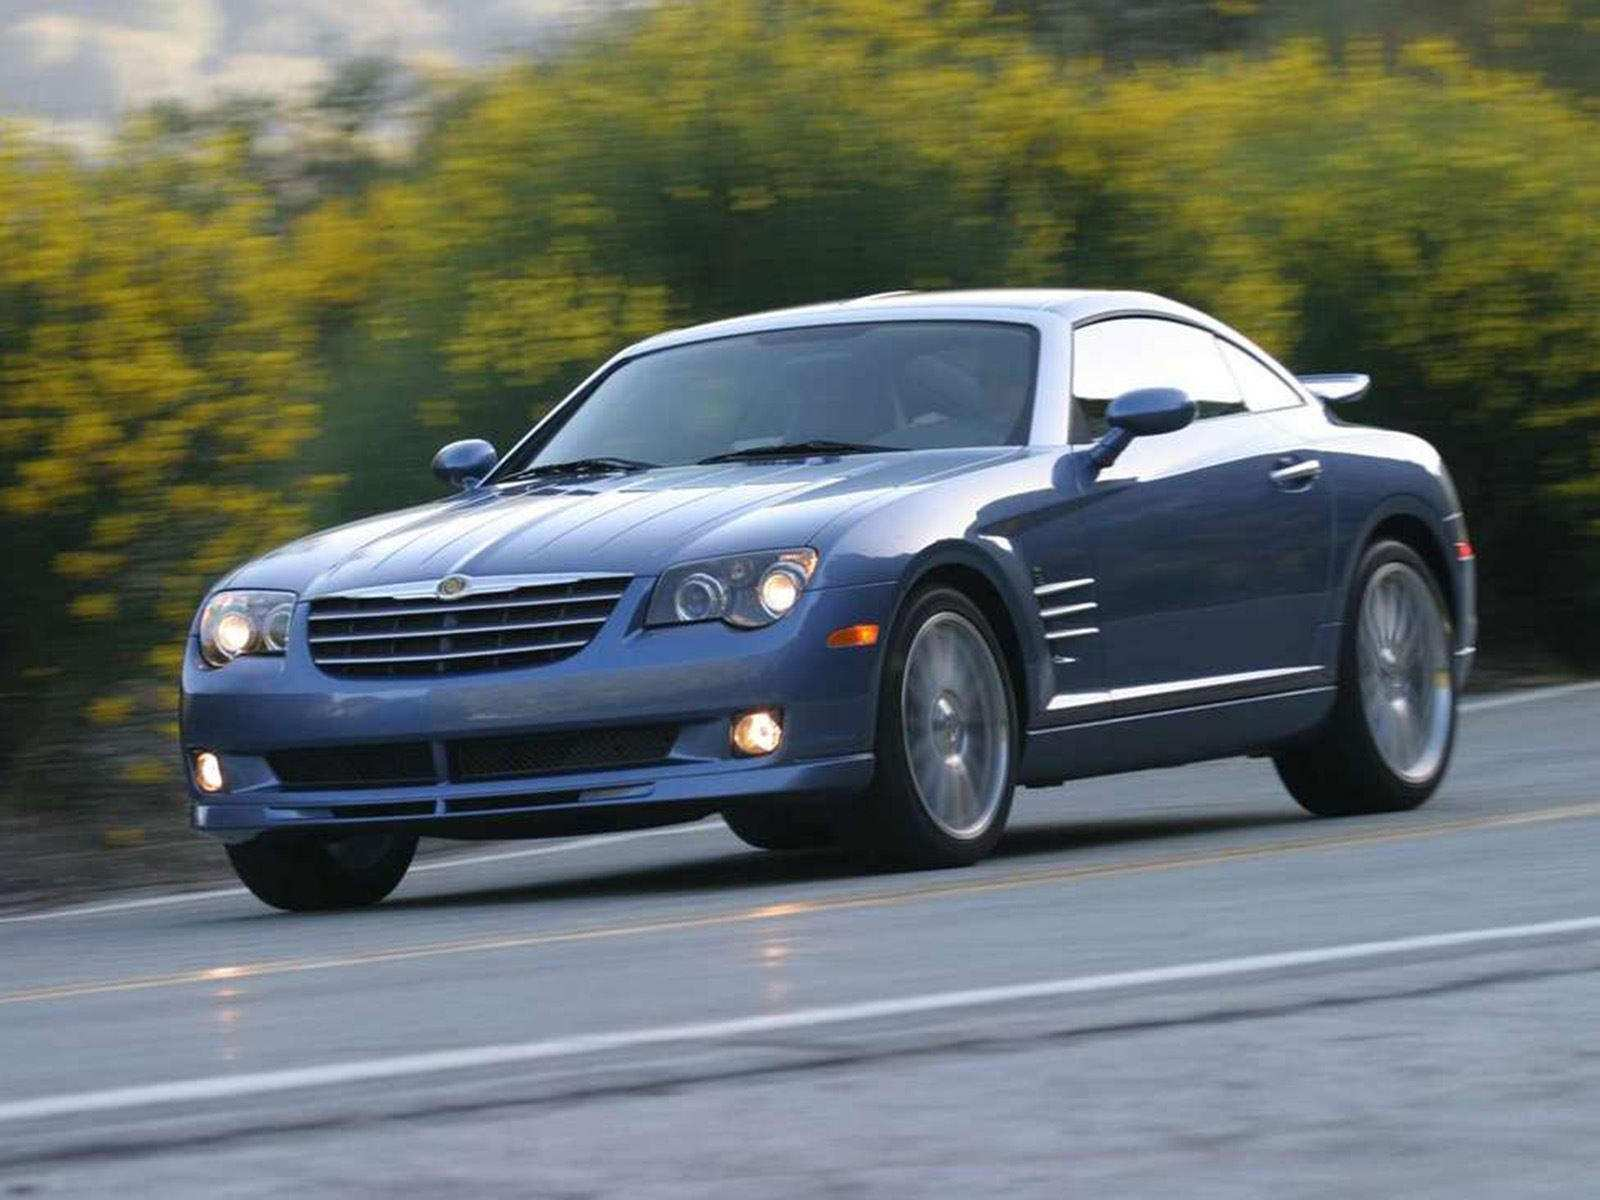 56 Best Review 2019 Chrysler Crossfire Rumors by 2019 Chrysler Crossfire